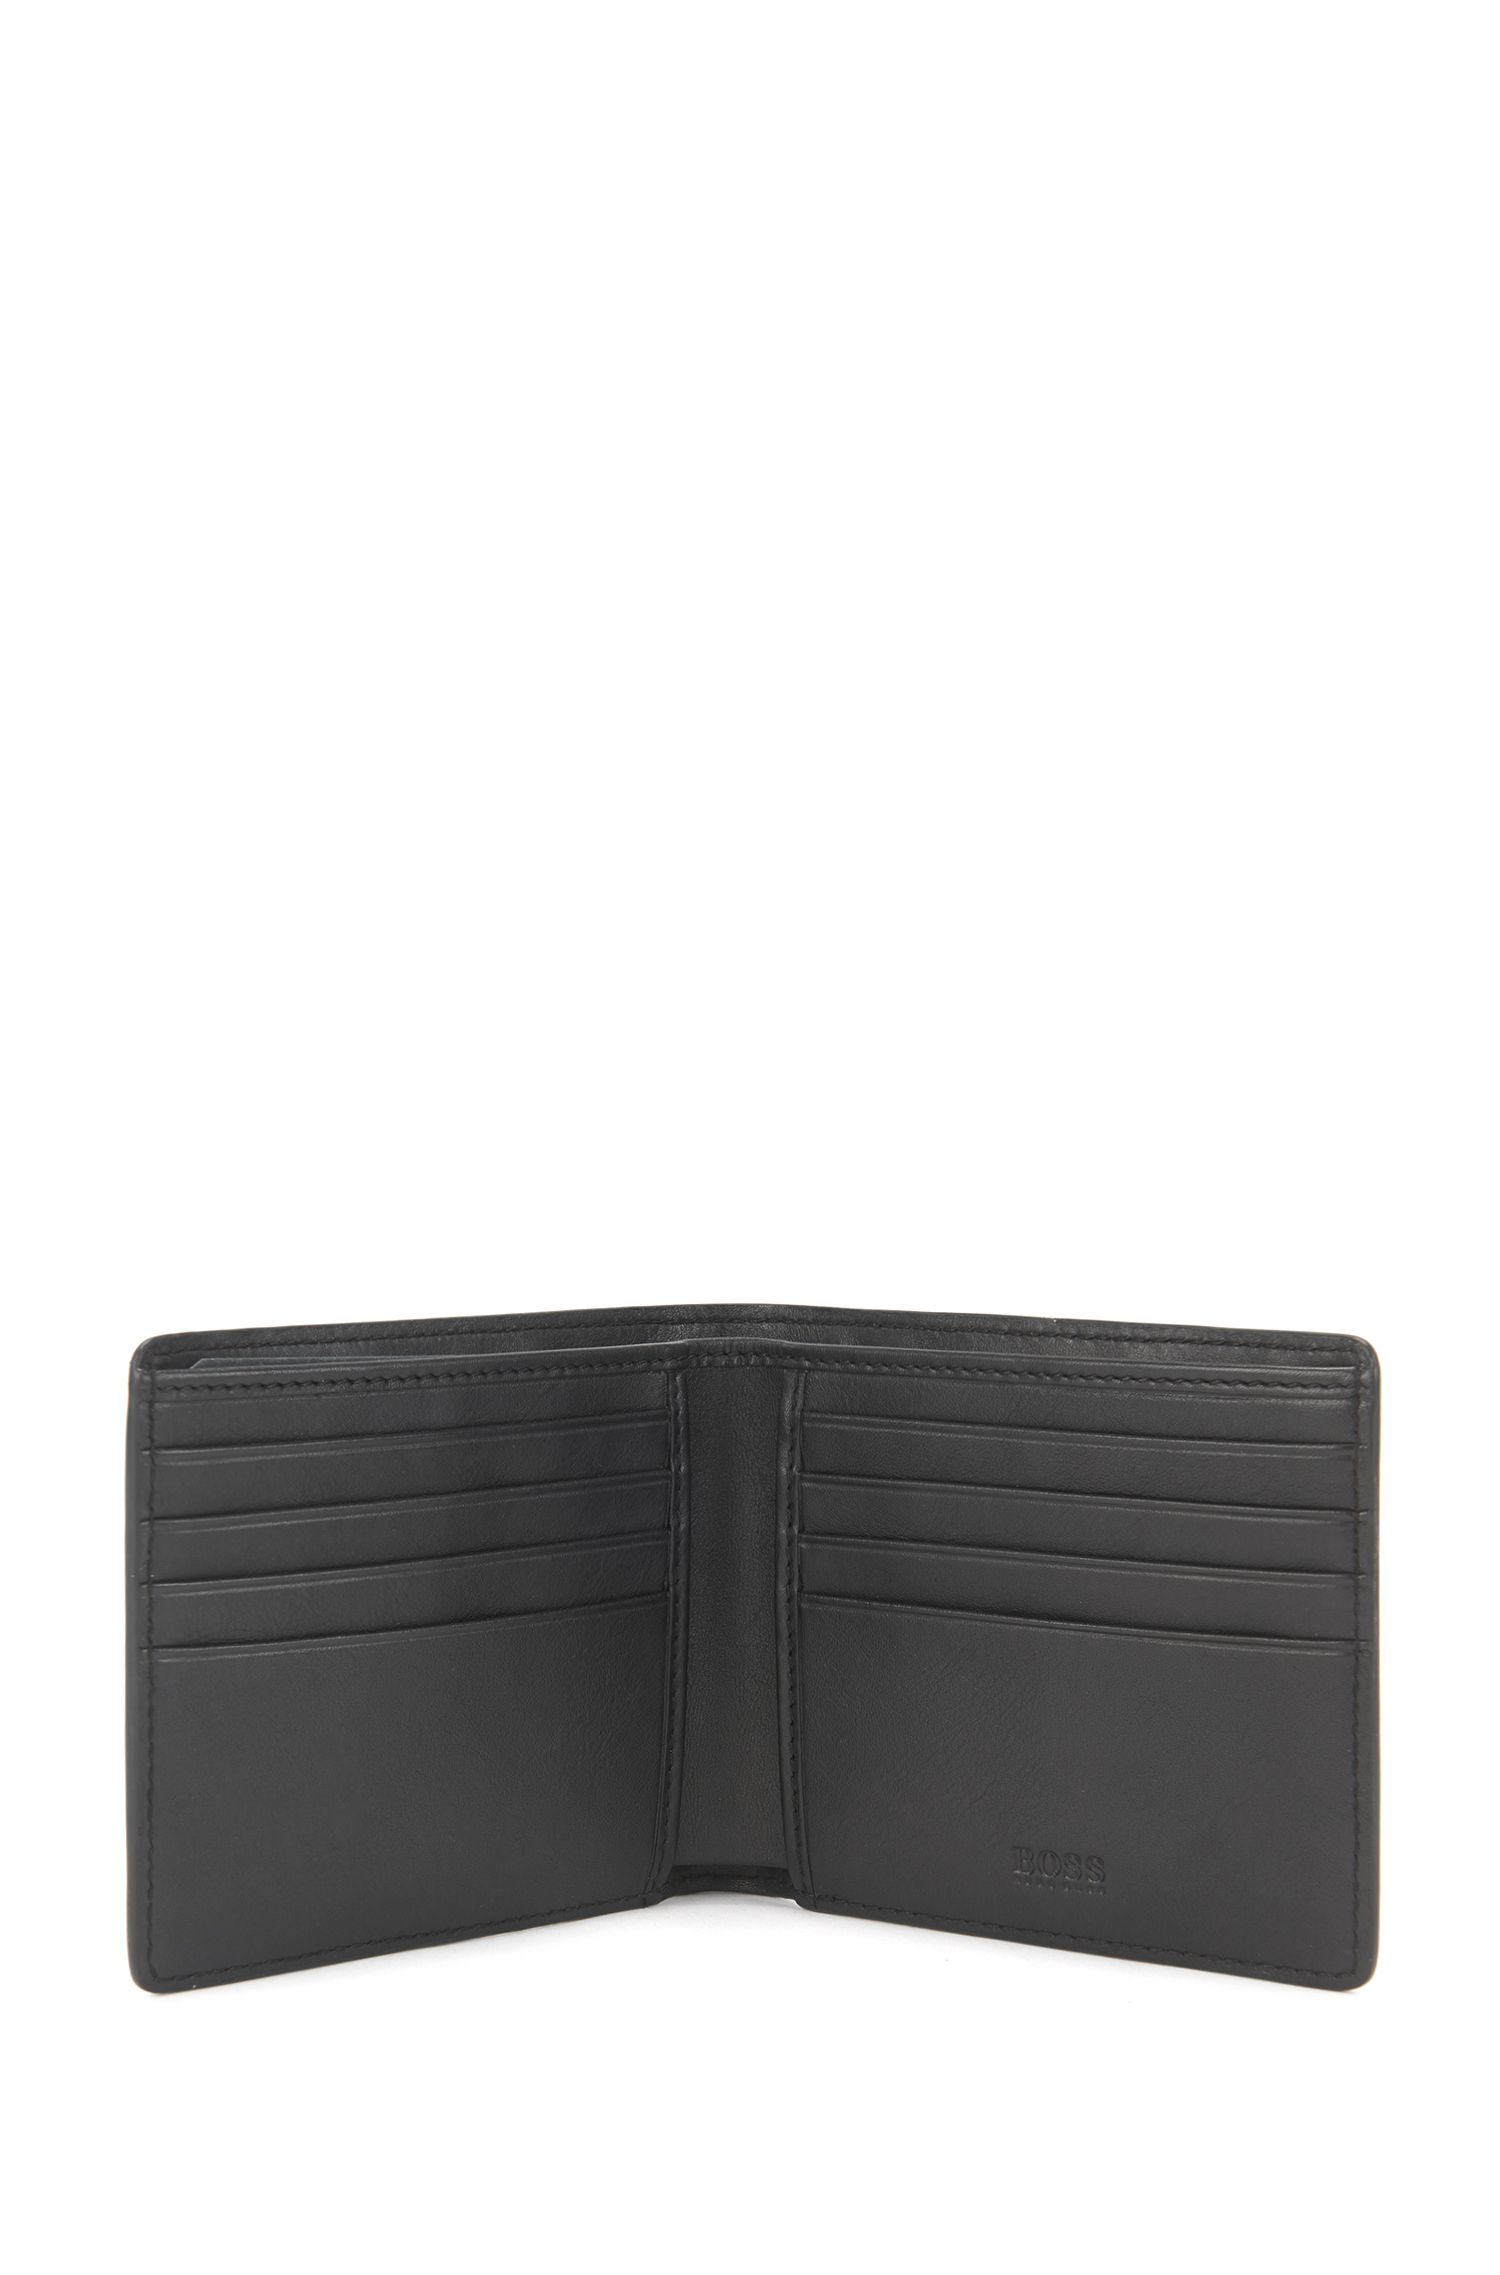 Wallet and card holder gift set in embossed leather, Black